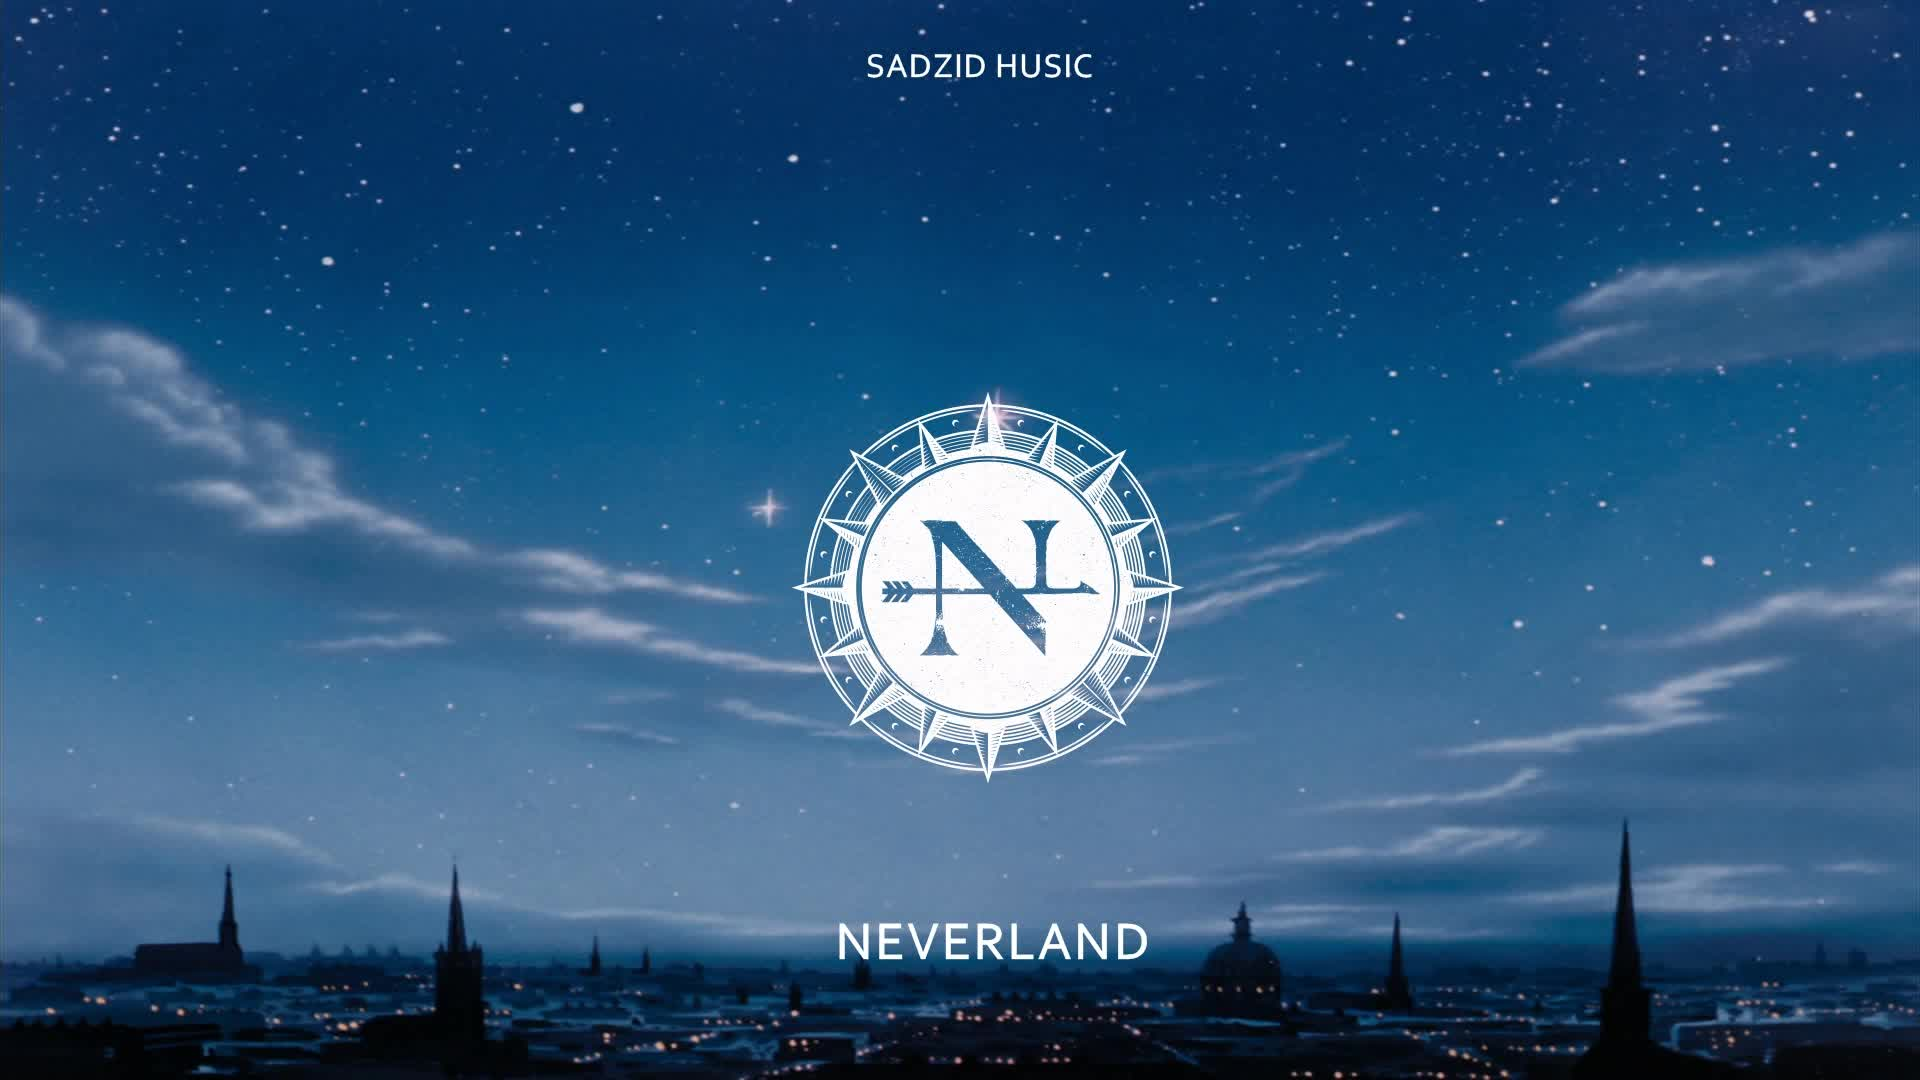 Sadzid Husic - Neverland